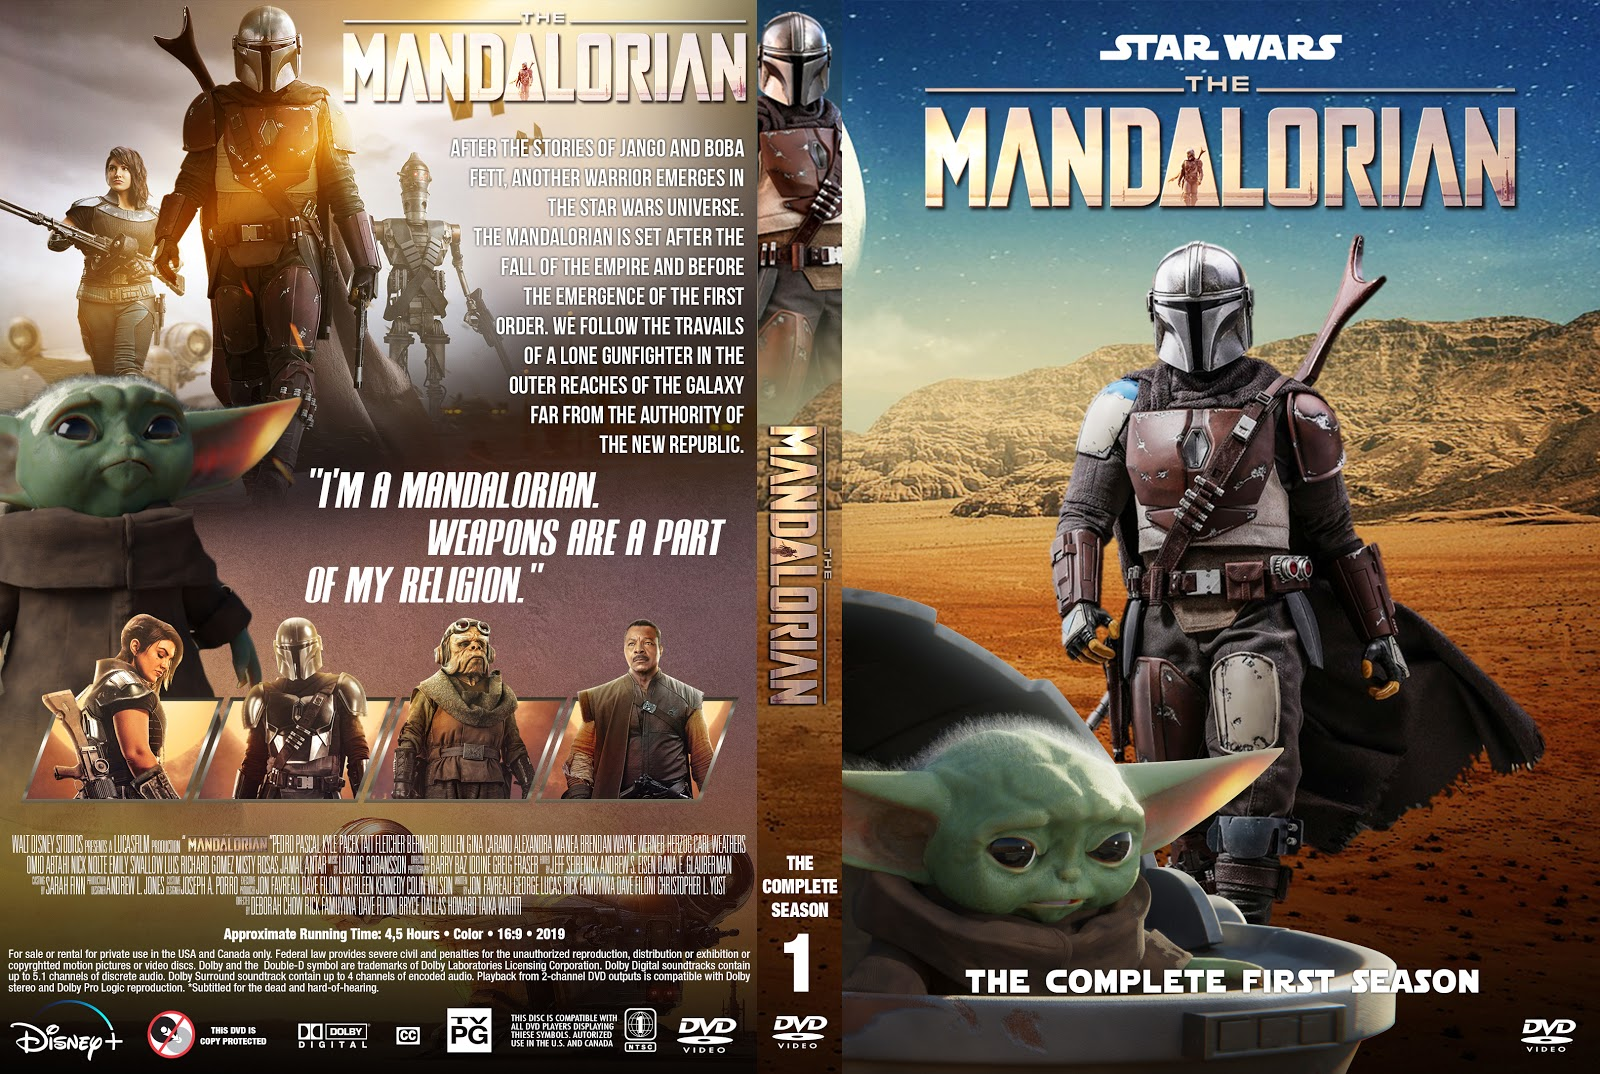 The Mandalorian Season 1 Dvd Cover Cover Addict Free Dvd Bluray Covers And Movie Posters